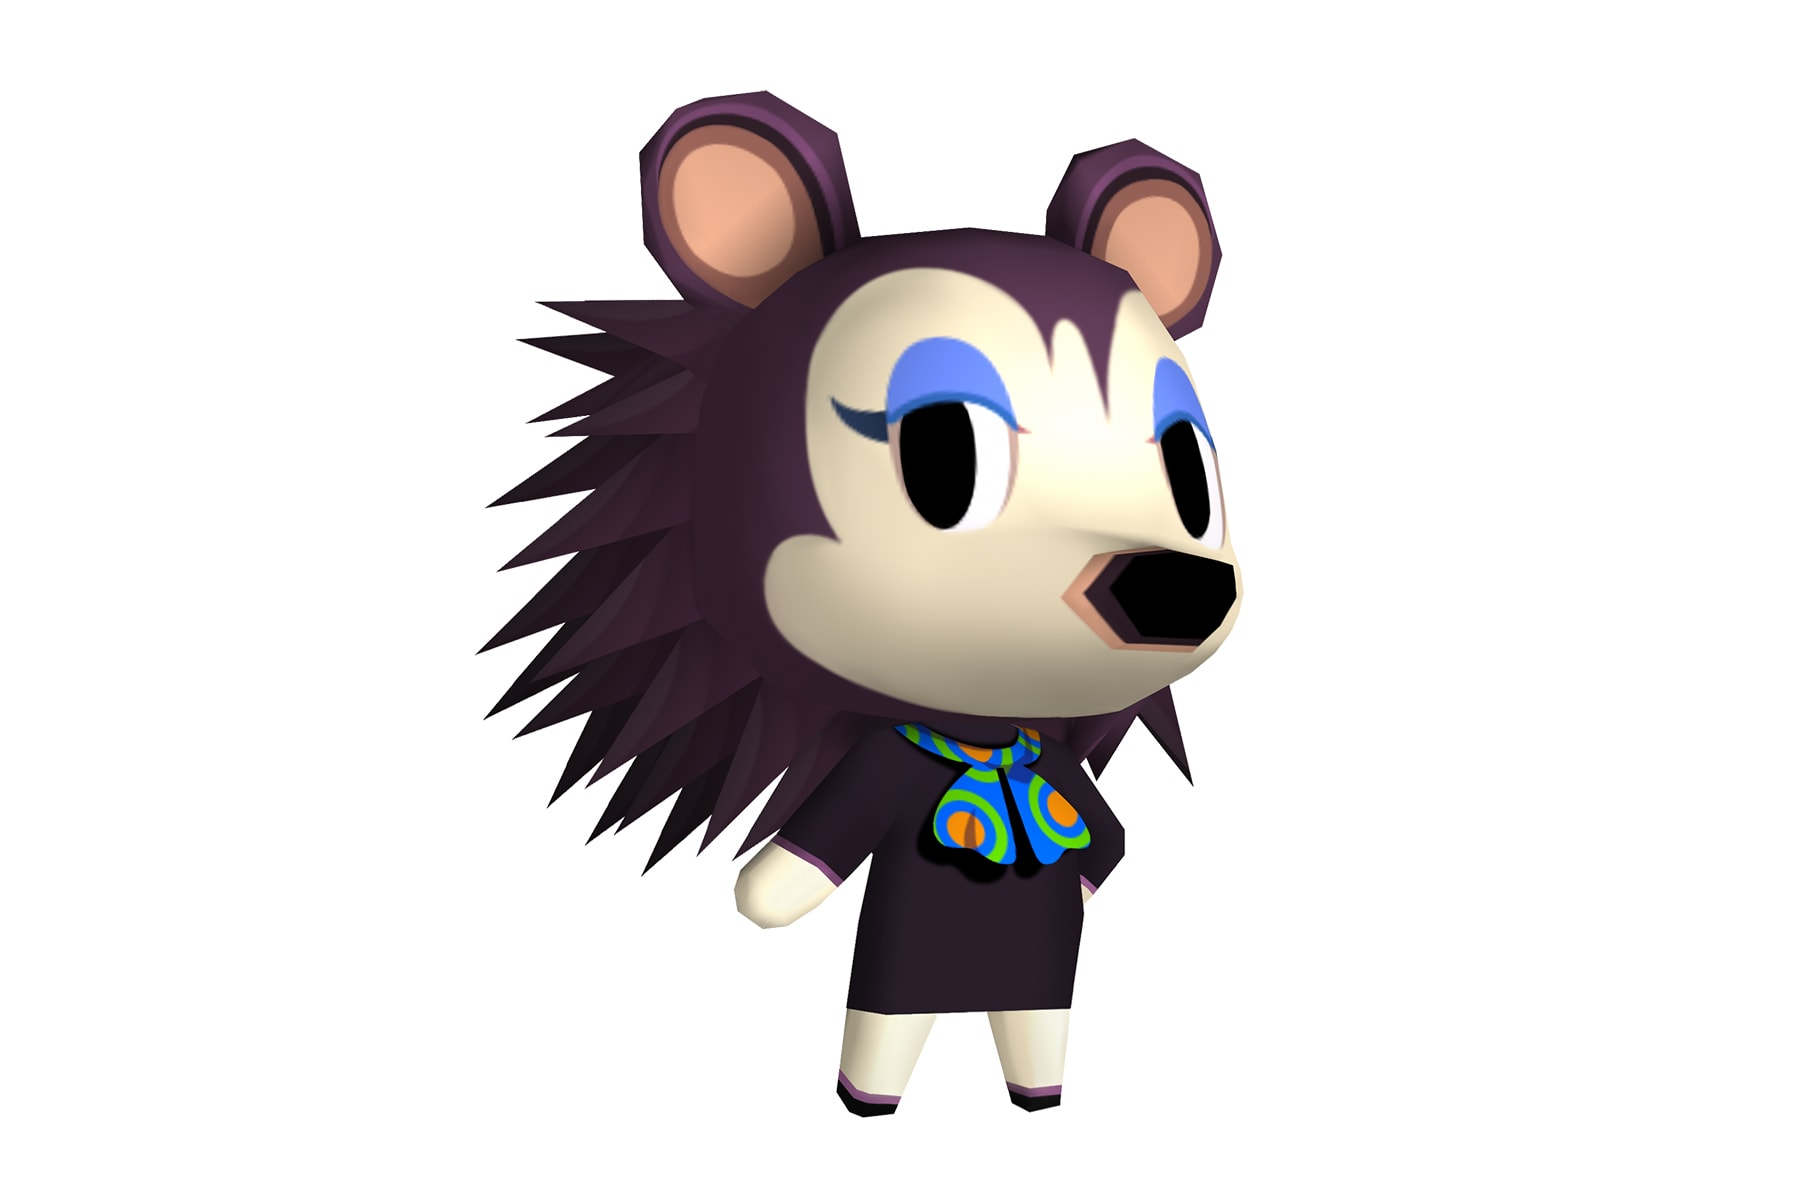 Labelle animal crossing new horizons